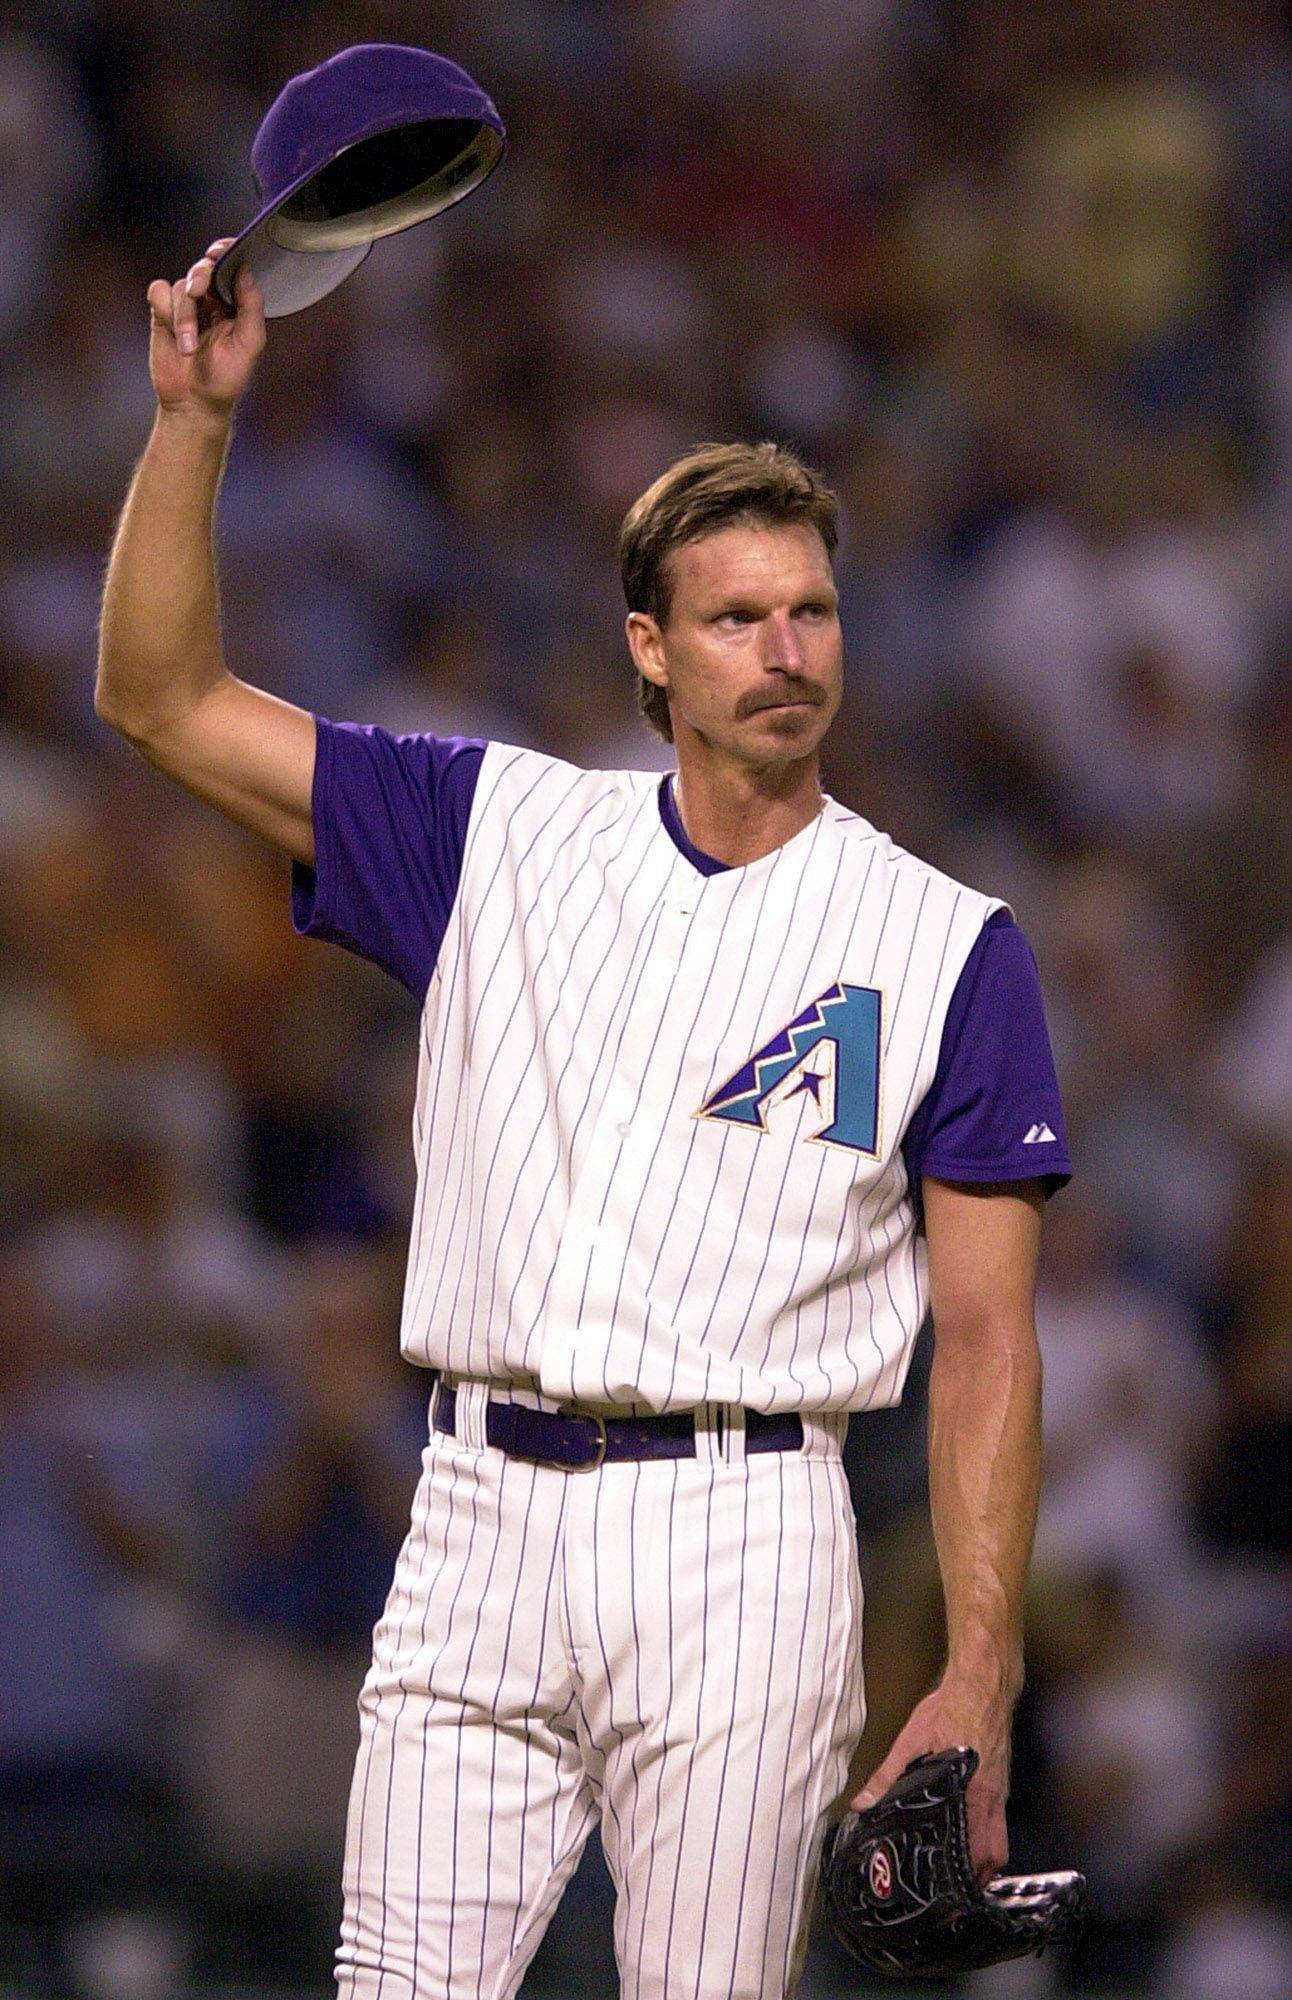 While pitching for the Arizona Diamondbacks in 2004, Randy Johnson acknowledges a standing ovation from the crowd after striking out the Colorado Rockies' Vinny Castilla to pass Steve Carlton for third place on the all-time strikeout list.